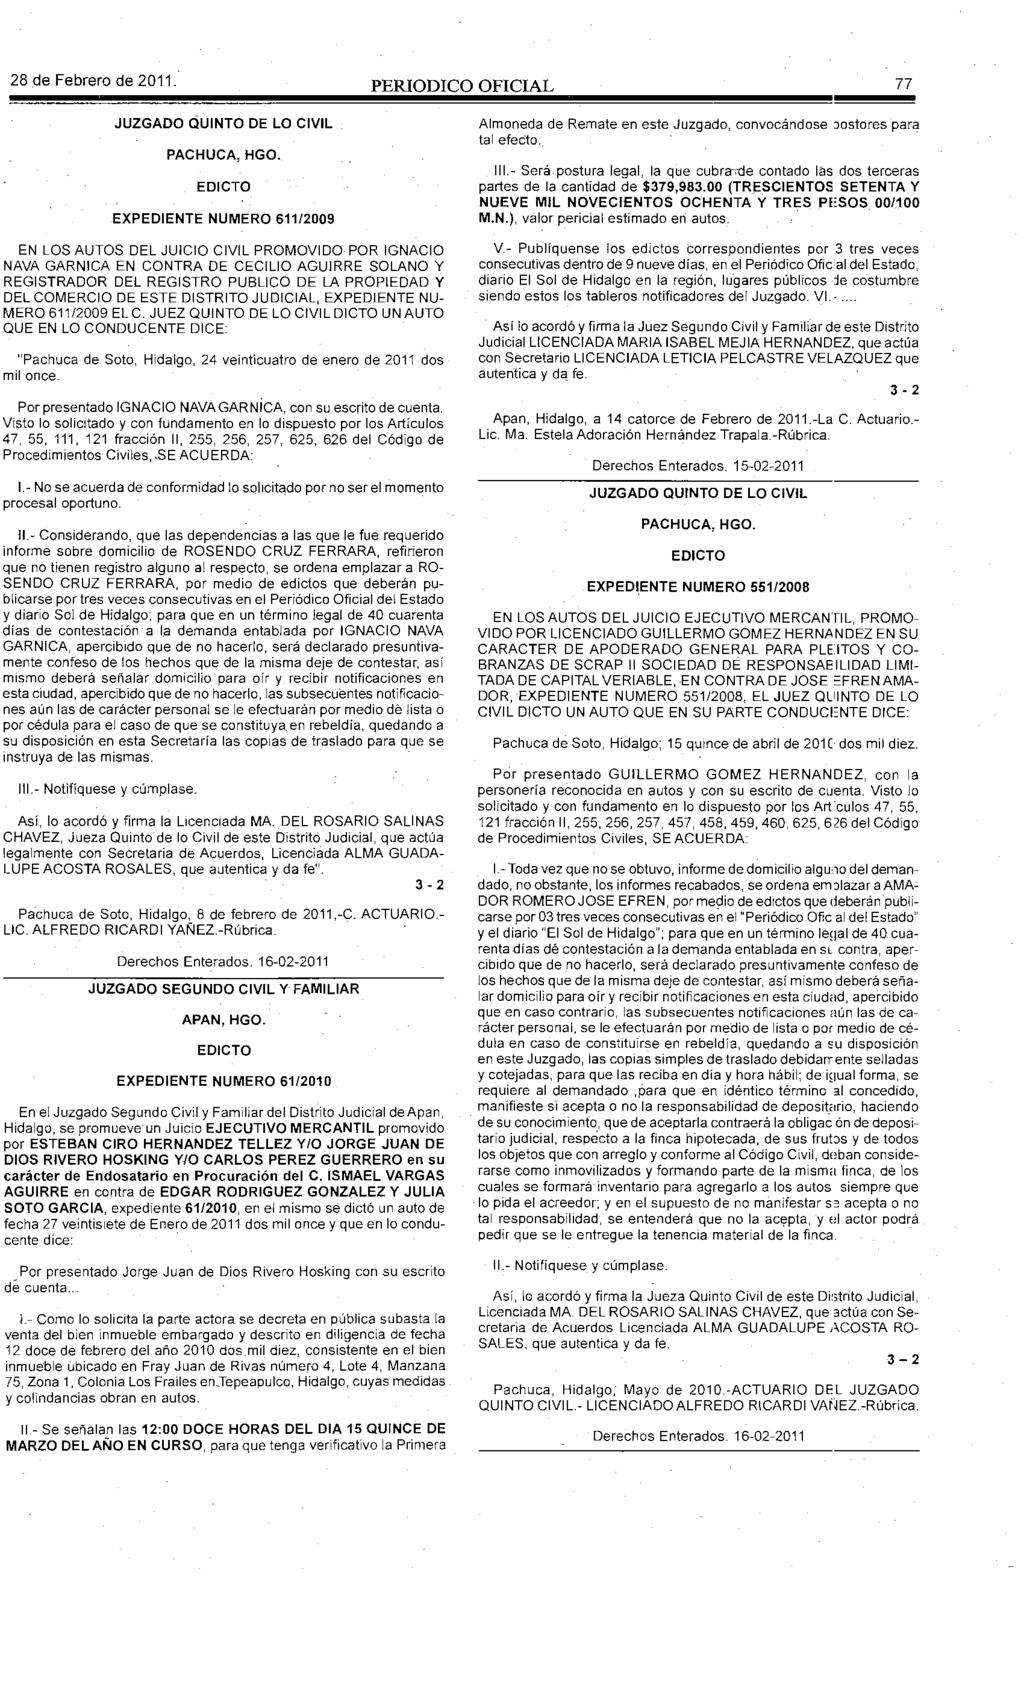 Documento digitalizado - PDF